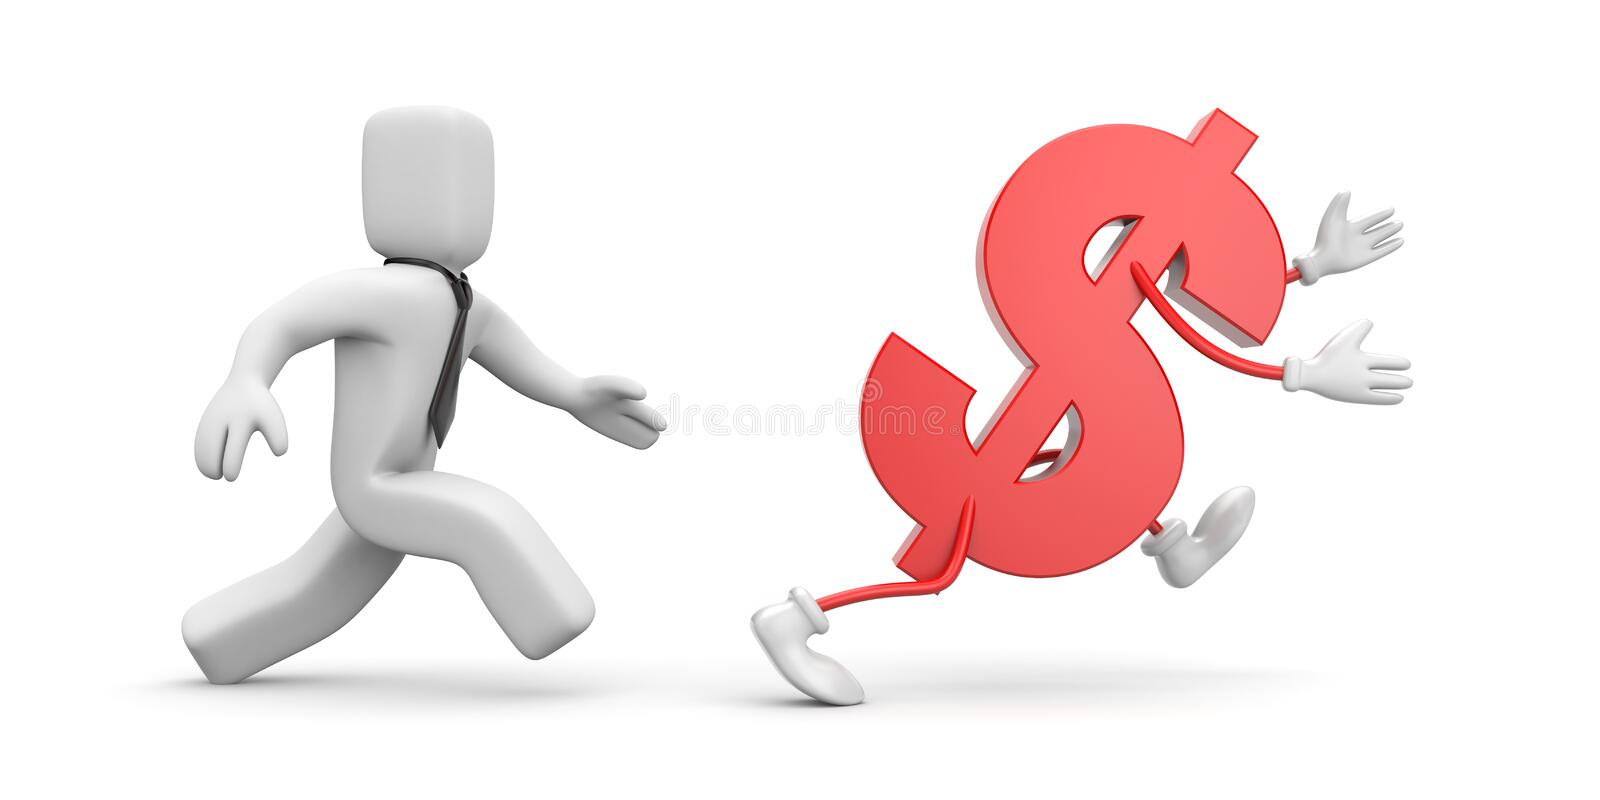 Download In a pursuit of profit stock illustration. Image of business - 20139021